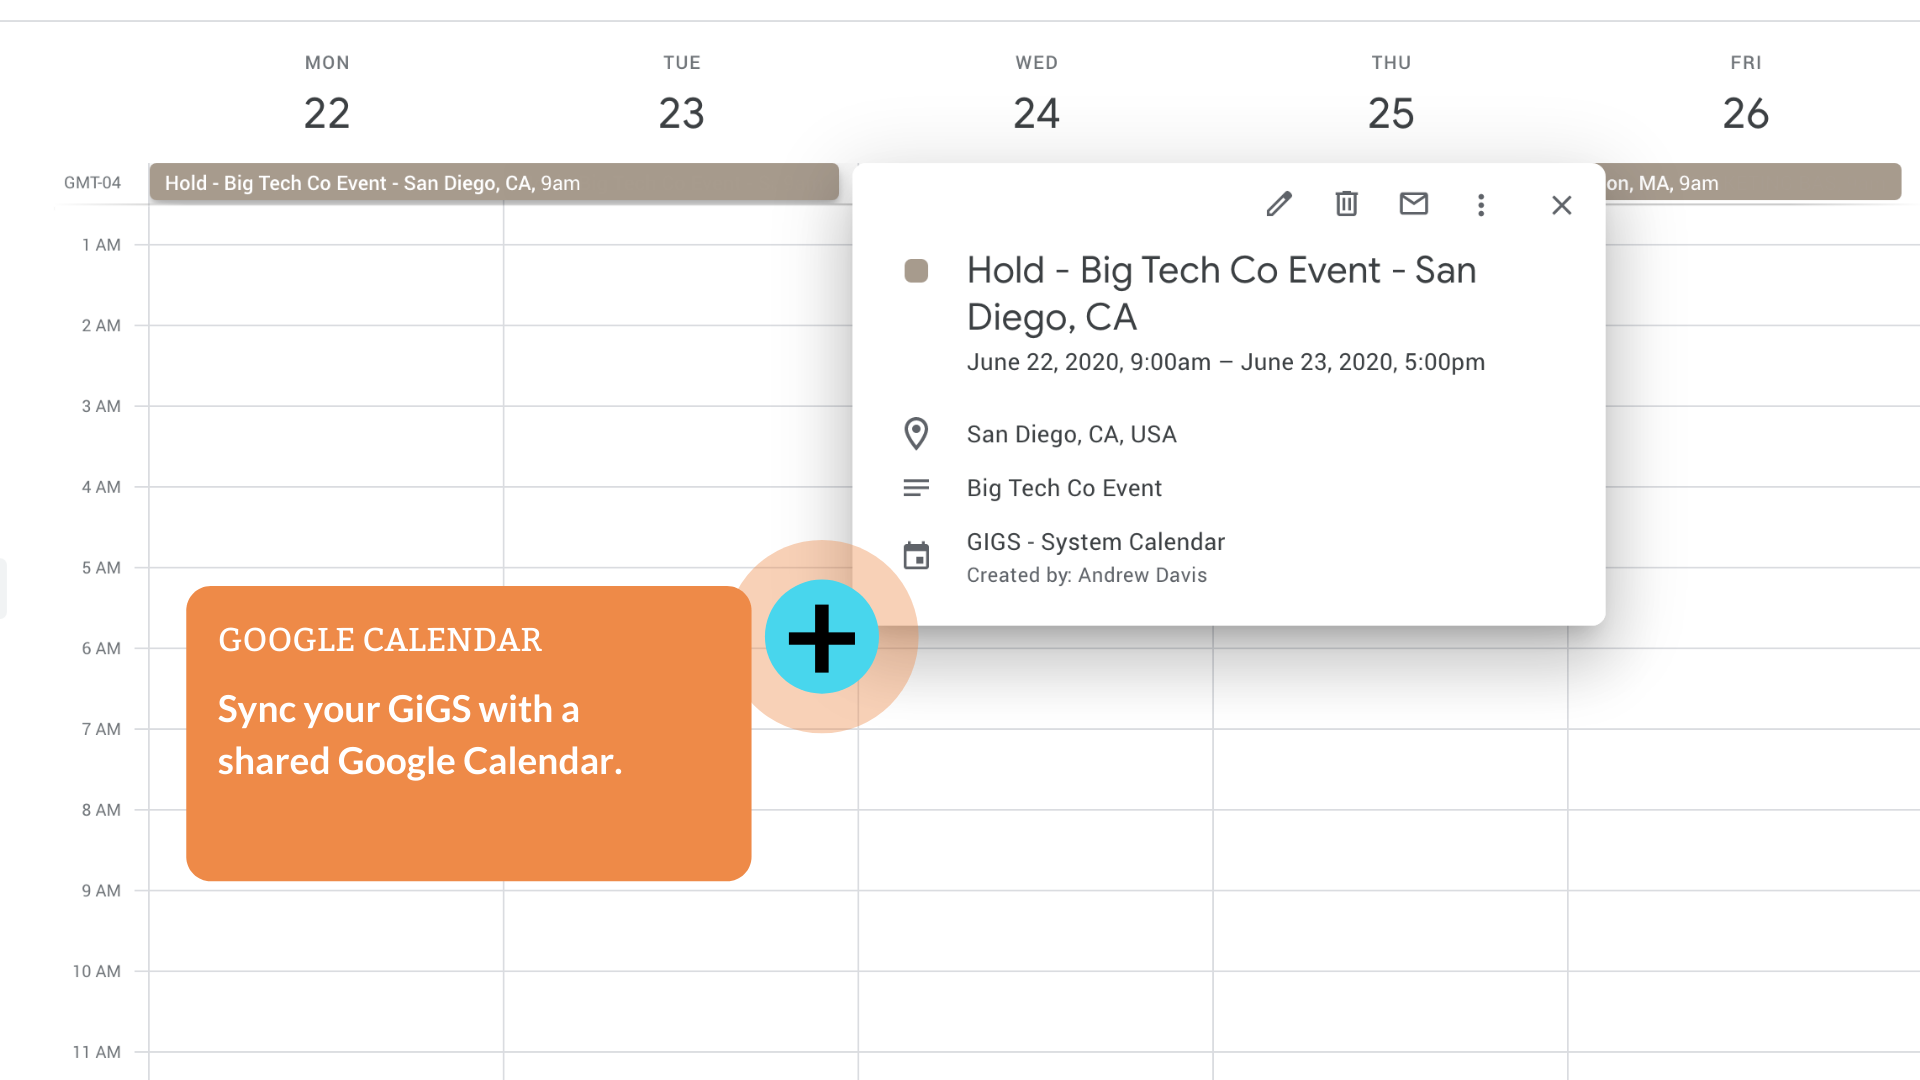 Sync all your GiGS with a shared Google Calendar